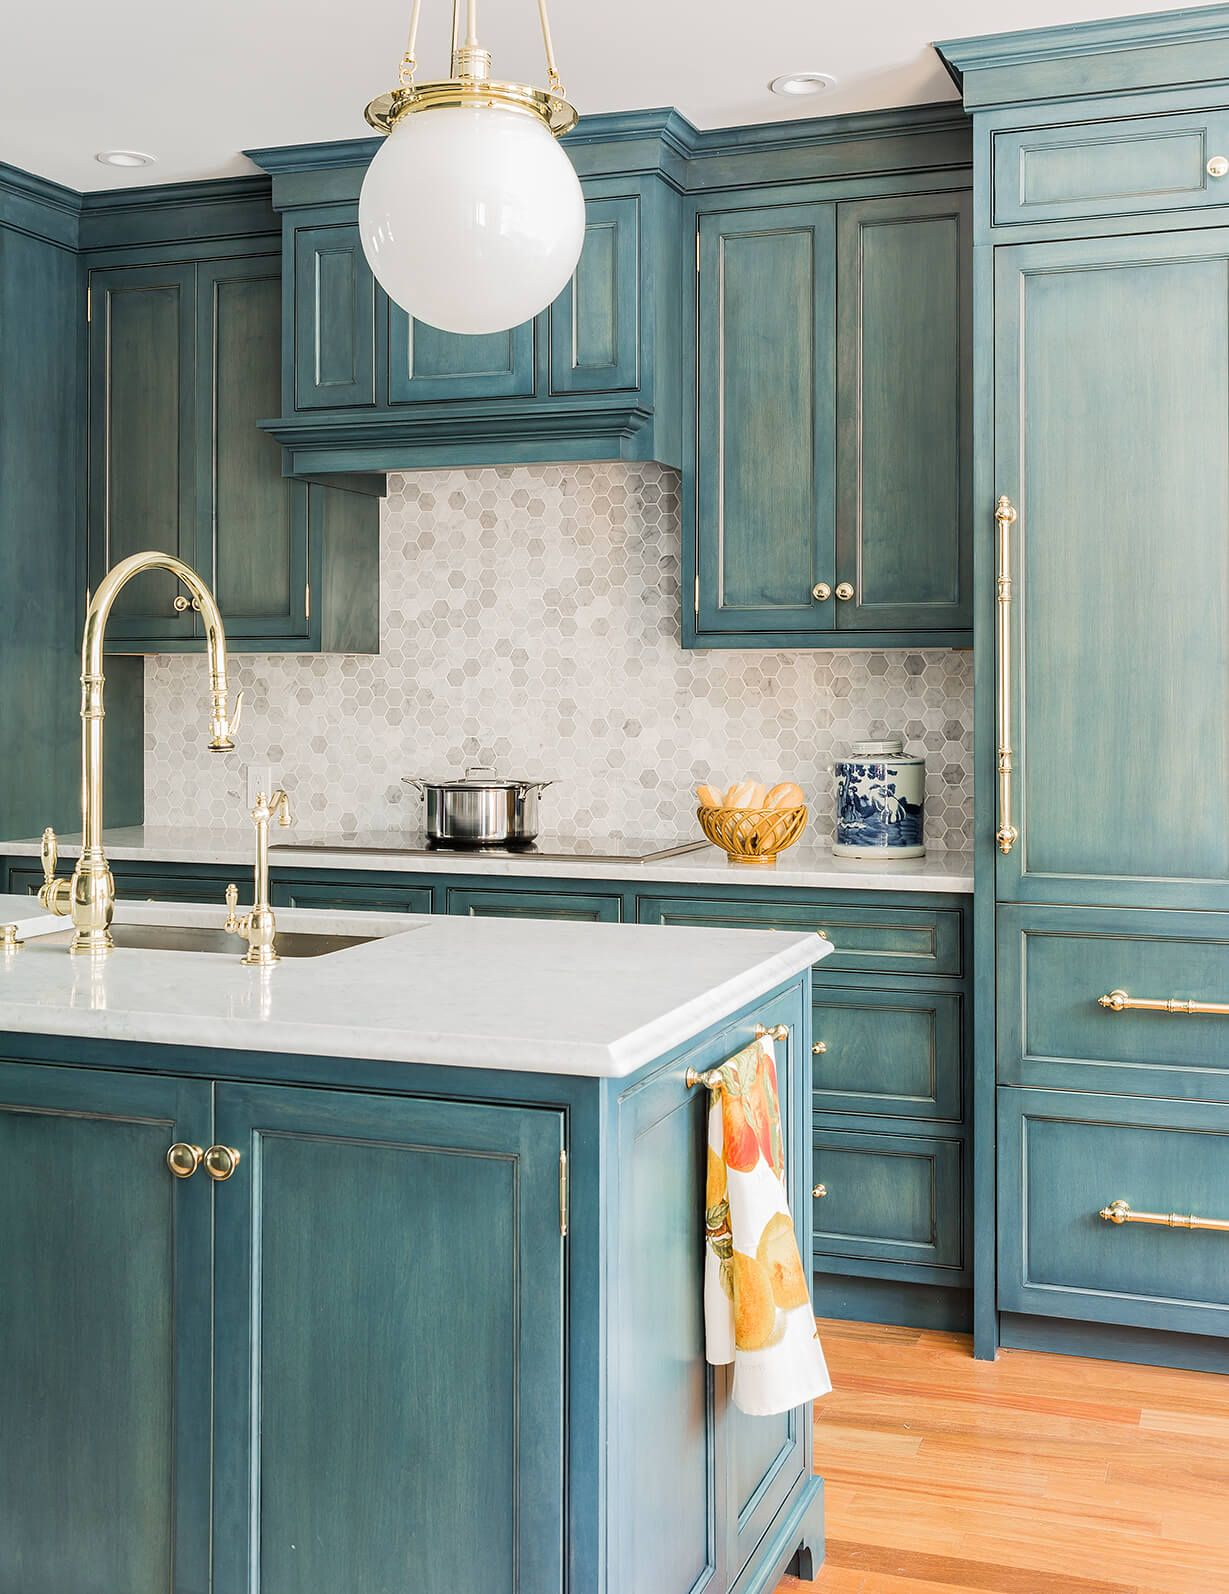 Blue Kitchen Cabinets Home Depot In 2020 Distressed Kitchen Cabinets Beautiful Kitchen Cabinets Turquoise Kitchen Cabinets